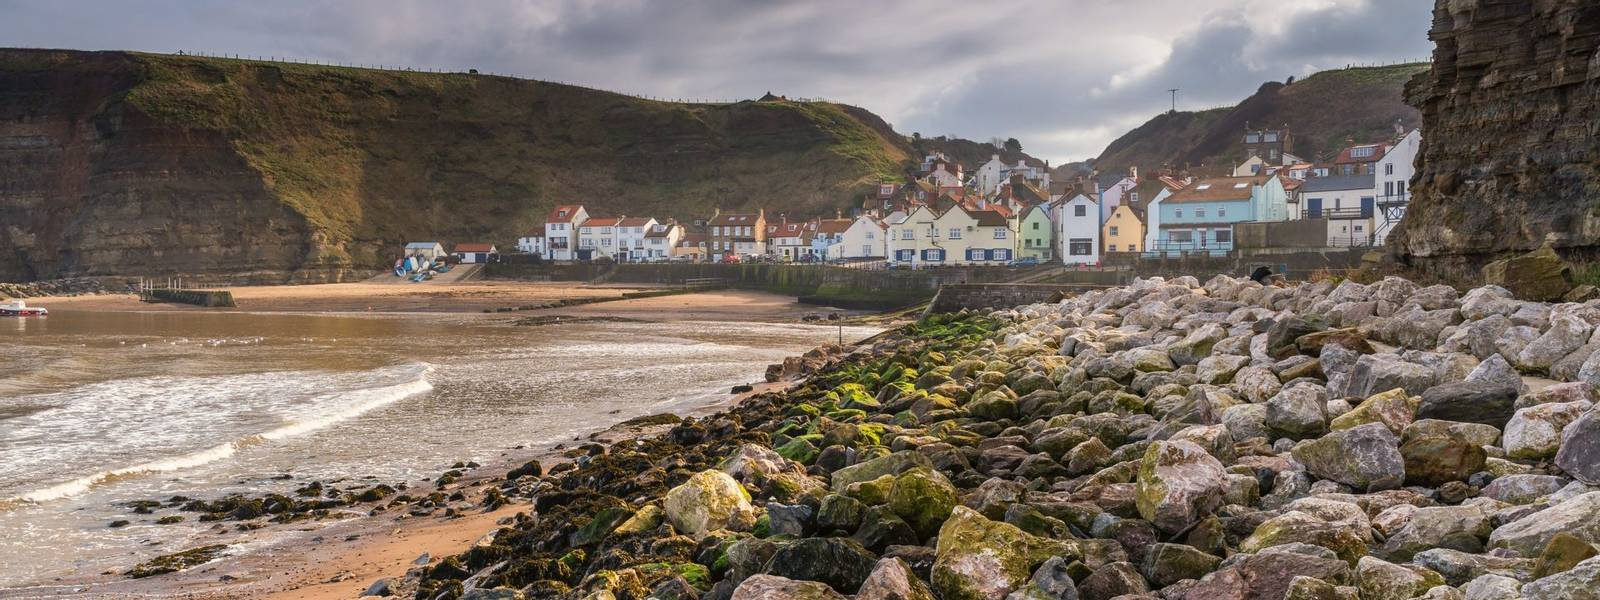 Staithes is a pretty seaside village and fishing port on the North Yorkshire coastline, and is today an attractive tourist d…